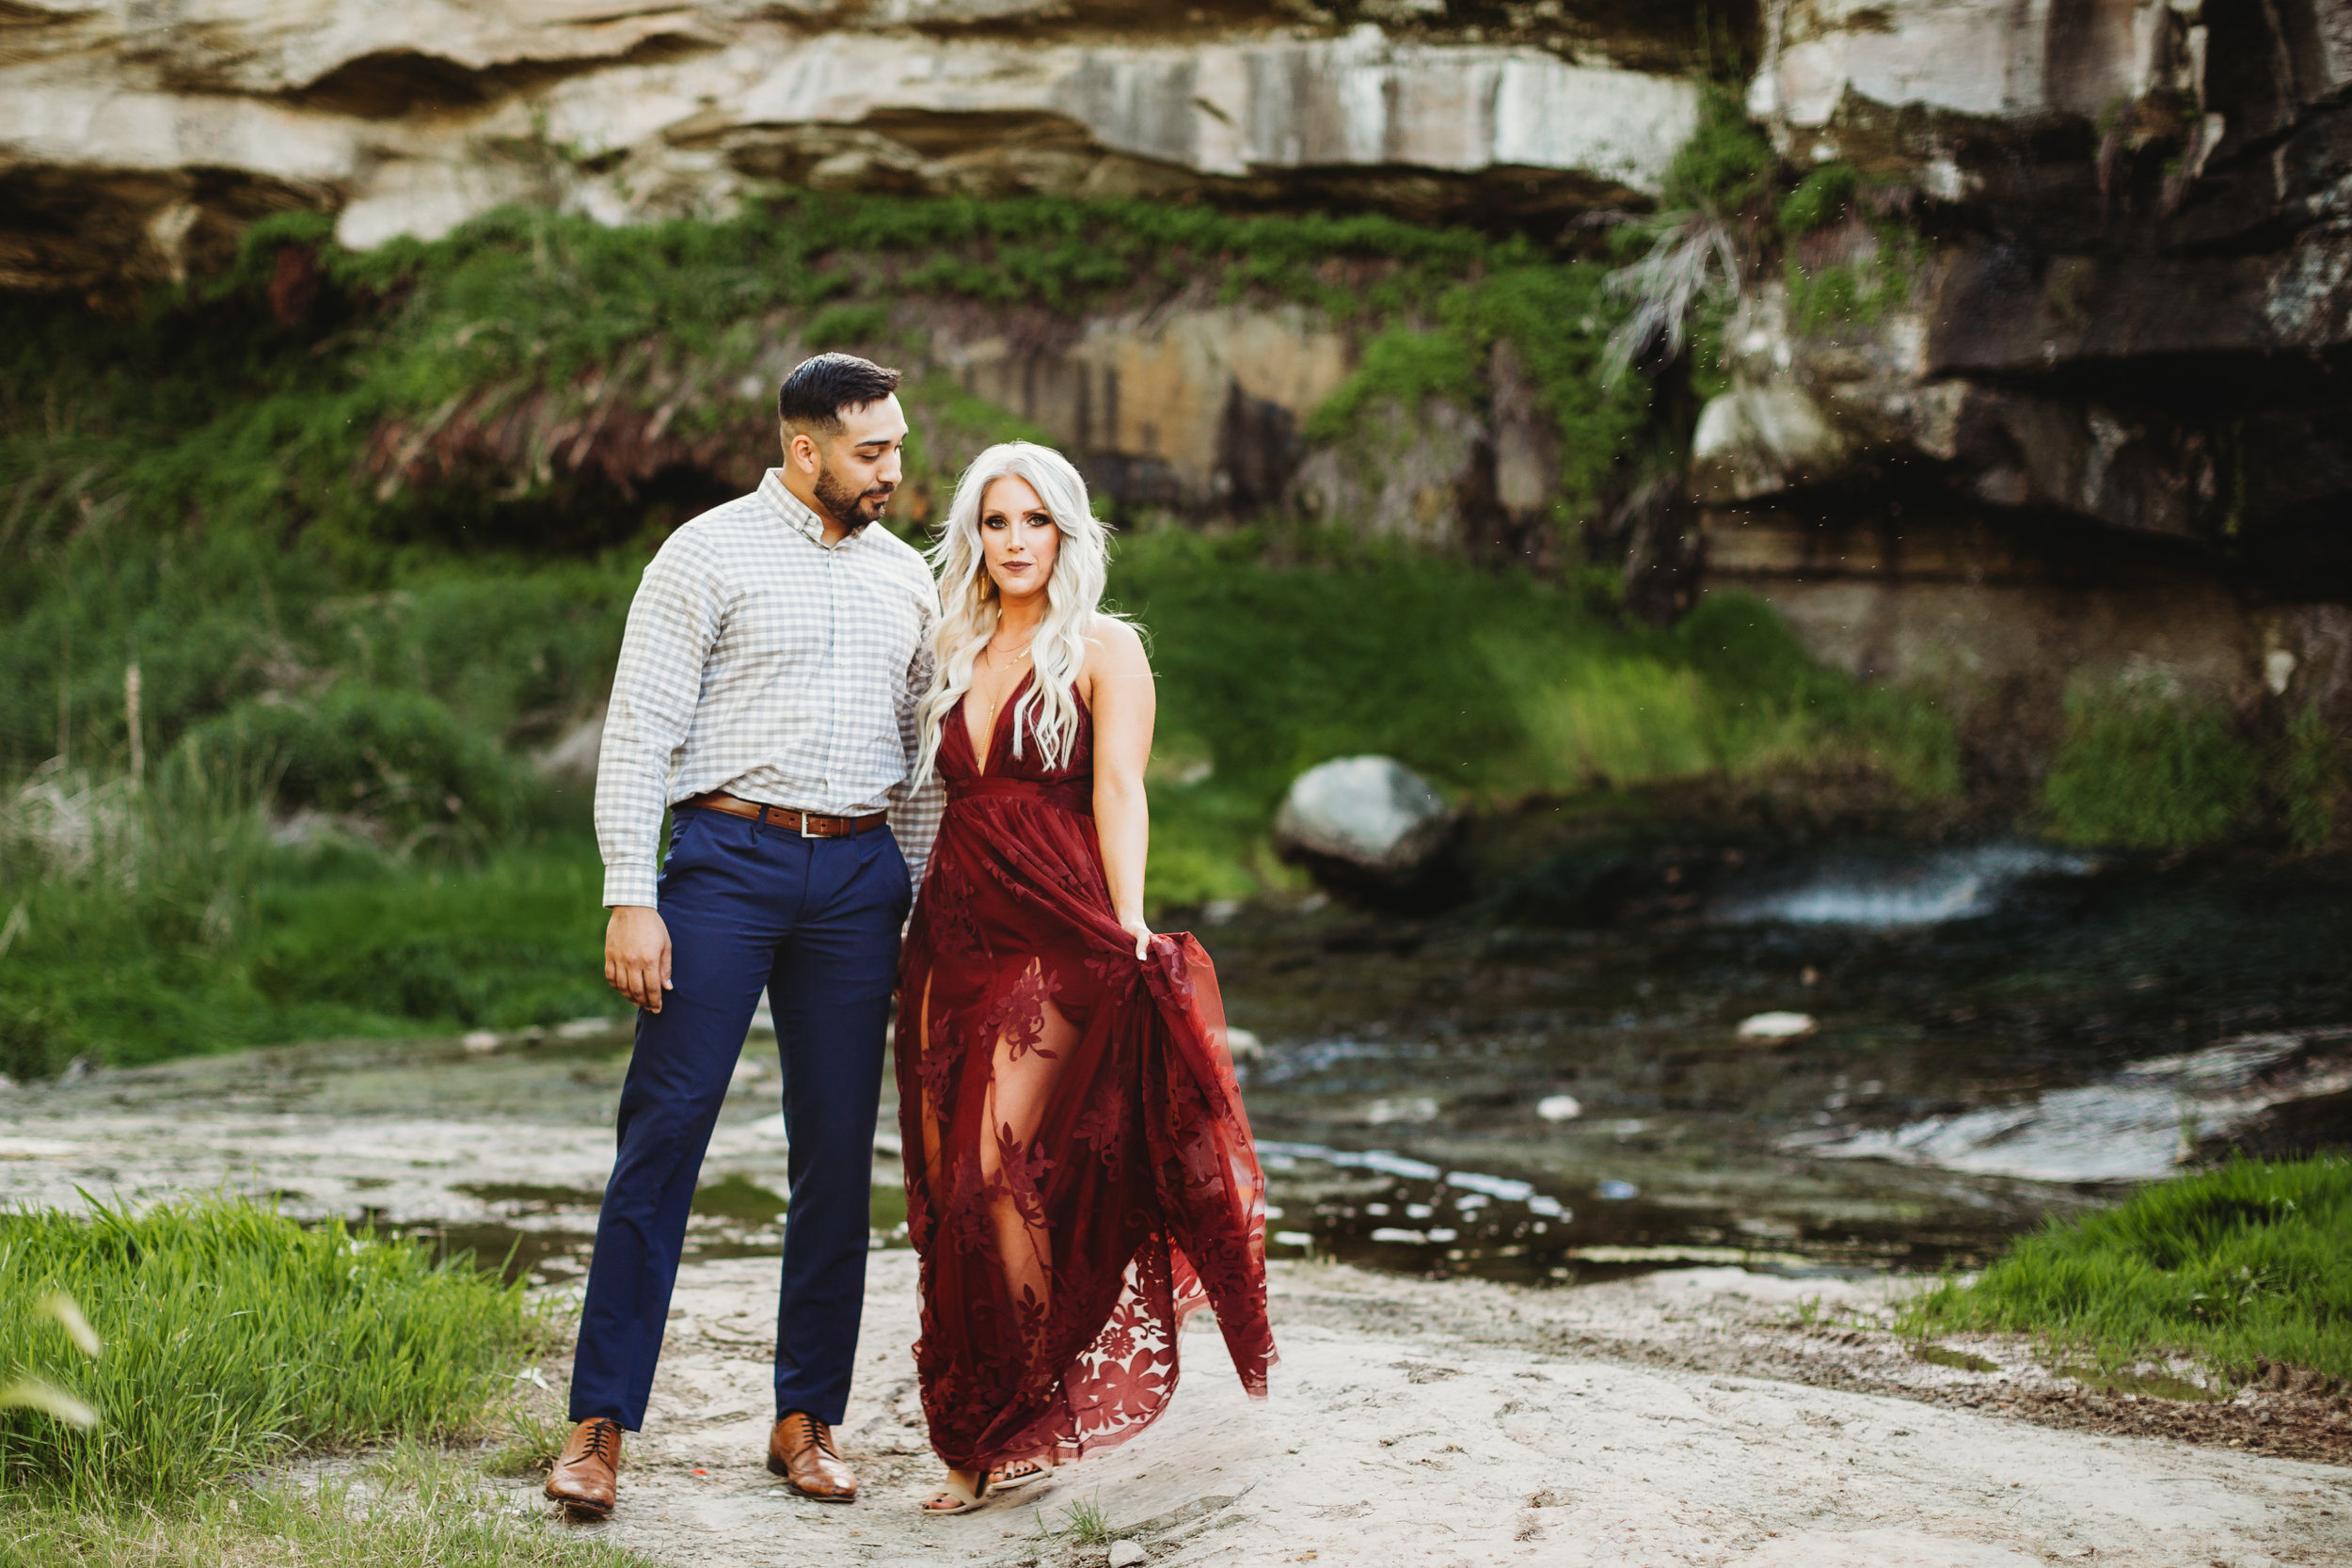 Formal engagement photographs of engaged couple in front of wildlife refuge full of green foliage arm in arm #engagementphotos #riverfalls #engaged #personality #amarillotexas #engagementphotographer #lifestylephotos #amarillophotographer #locationchoice #texasengagementphotos #engagment #tealawardphotography #wildliferefuge